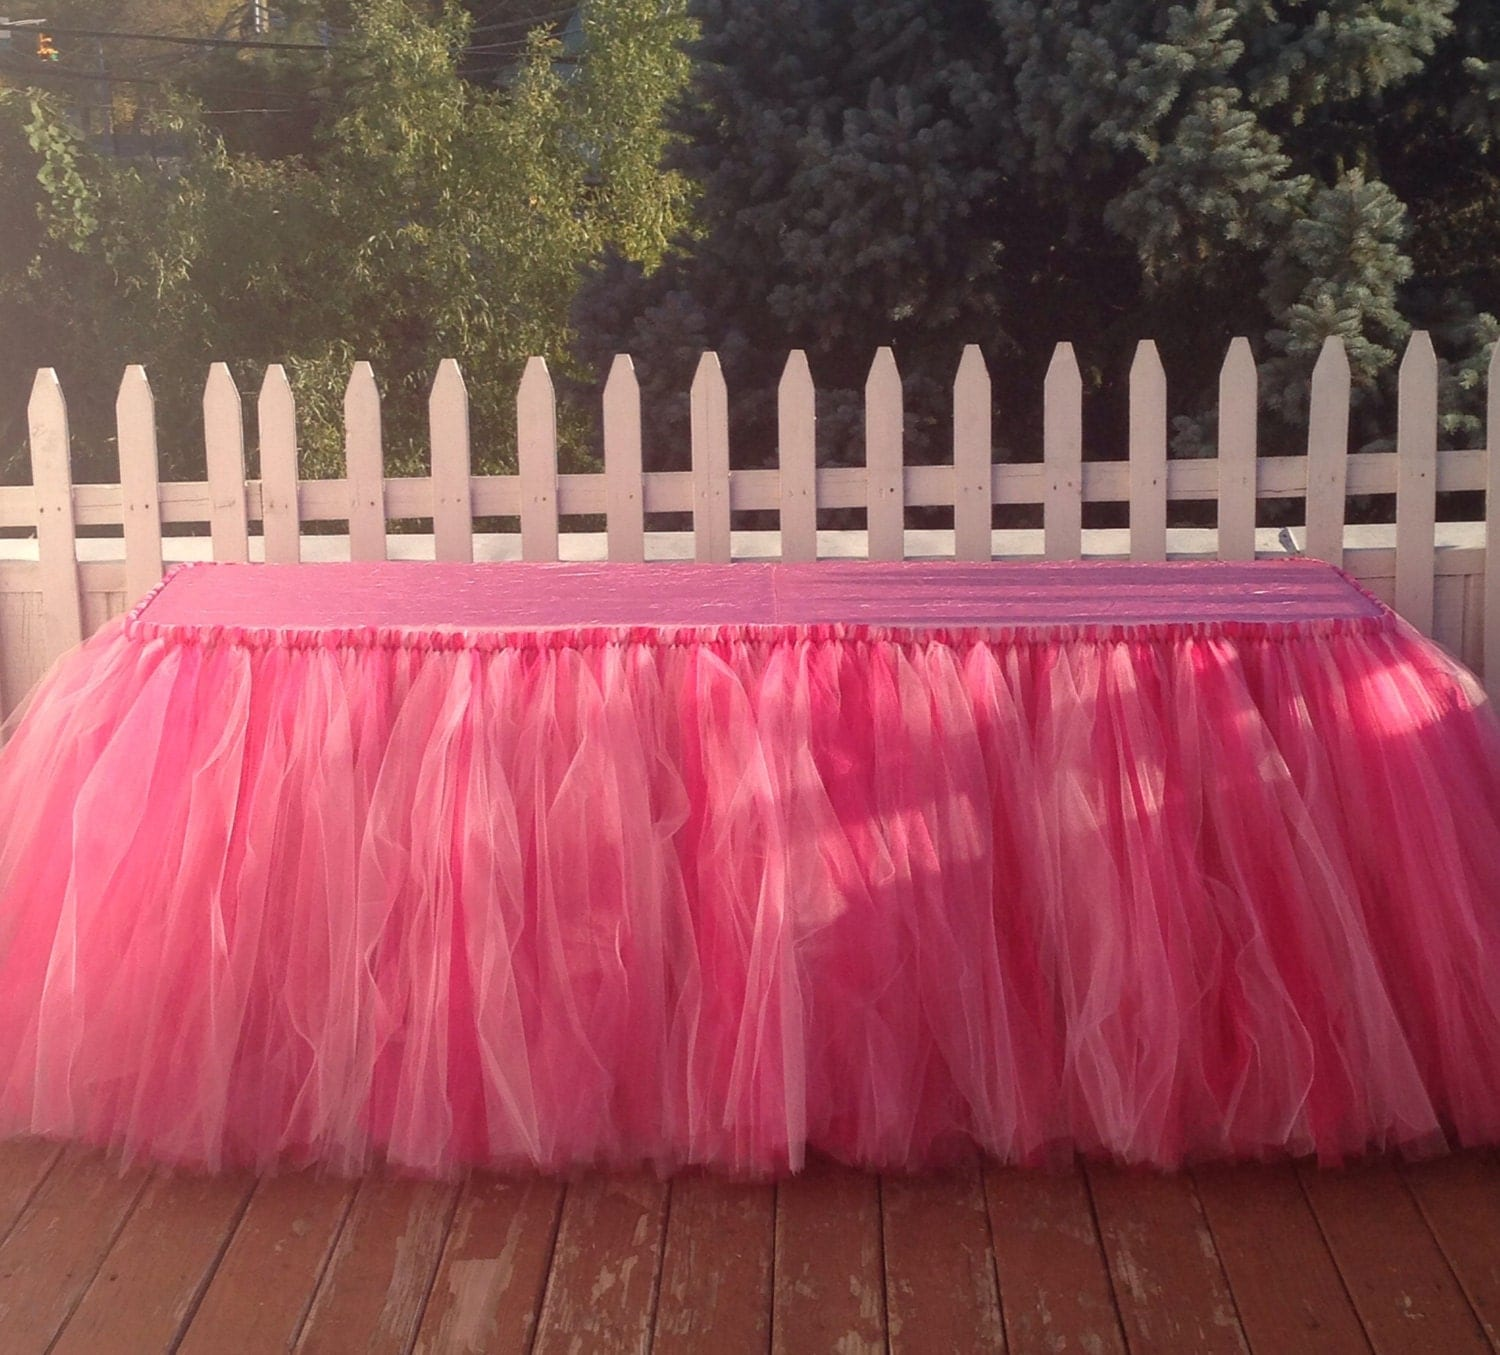 Buffet table skirting - 17 Feet Tulle Tablecloth Tutu Table Skirts Tutu Party